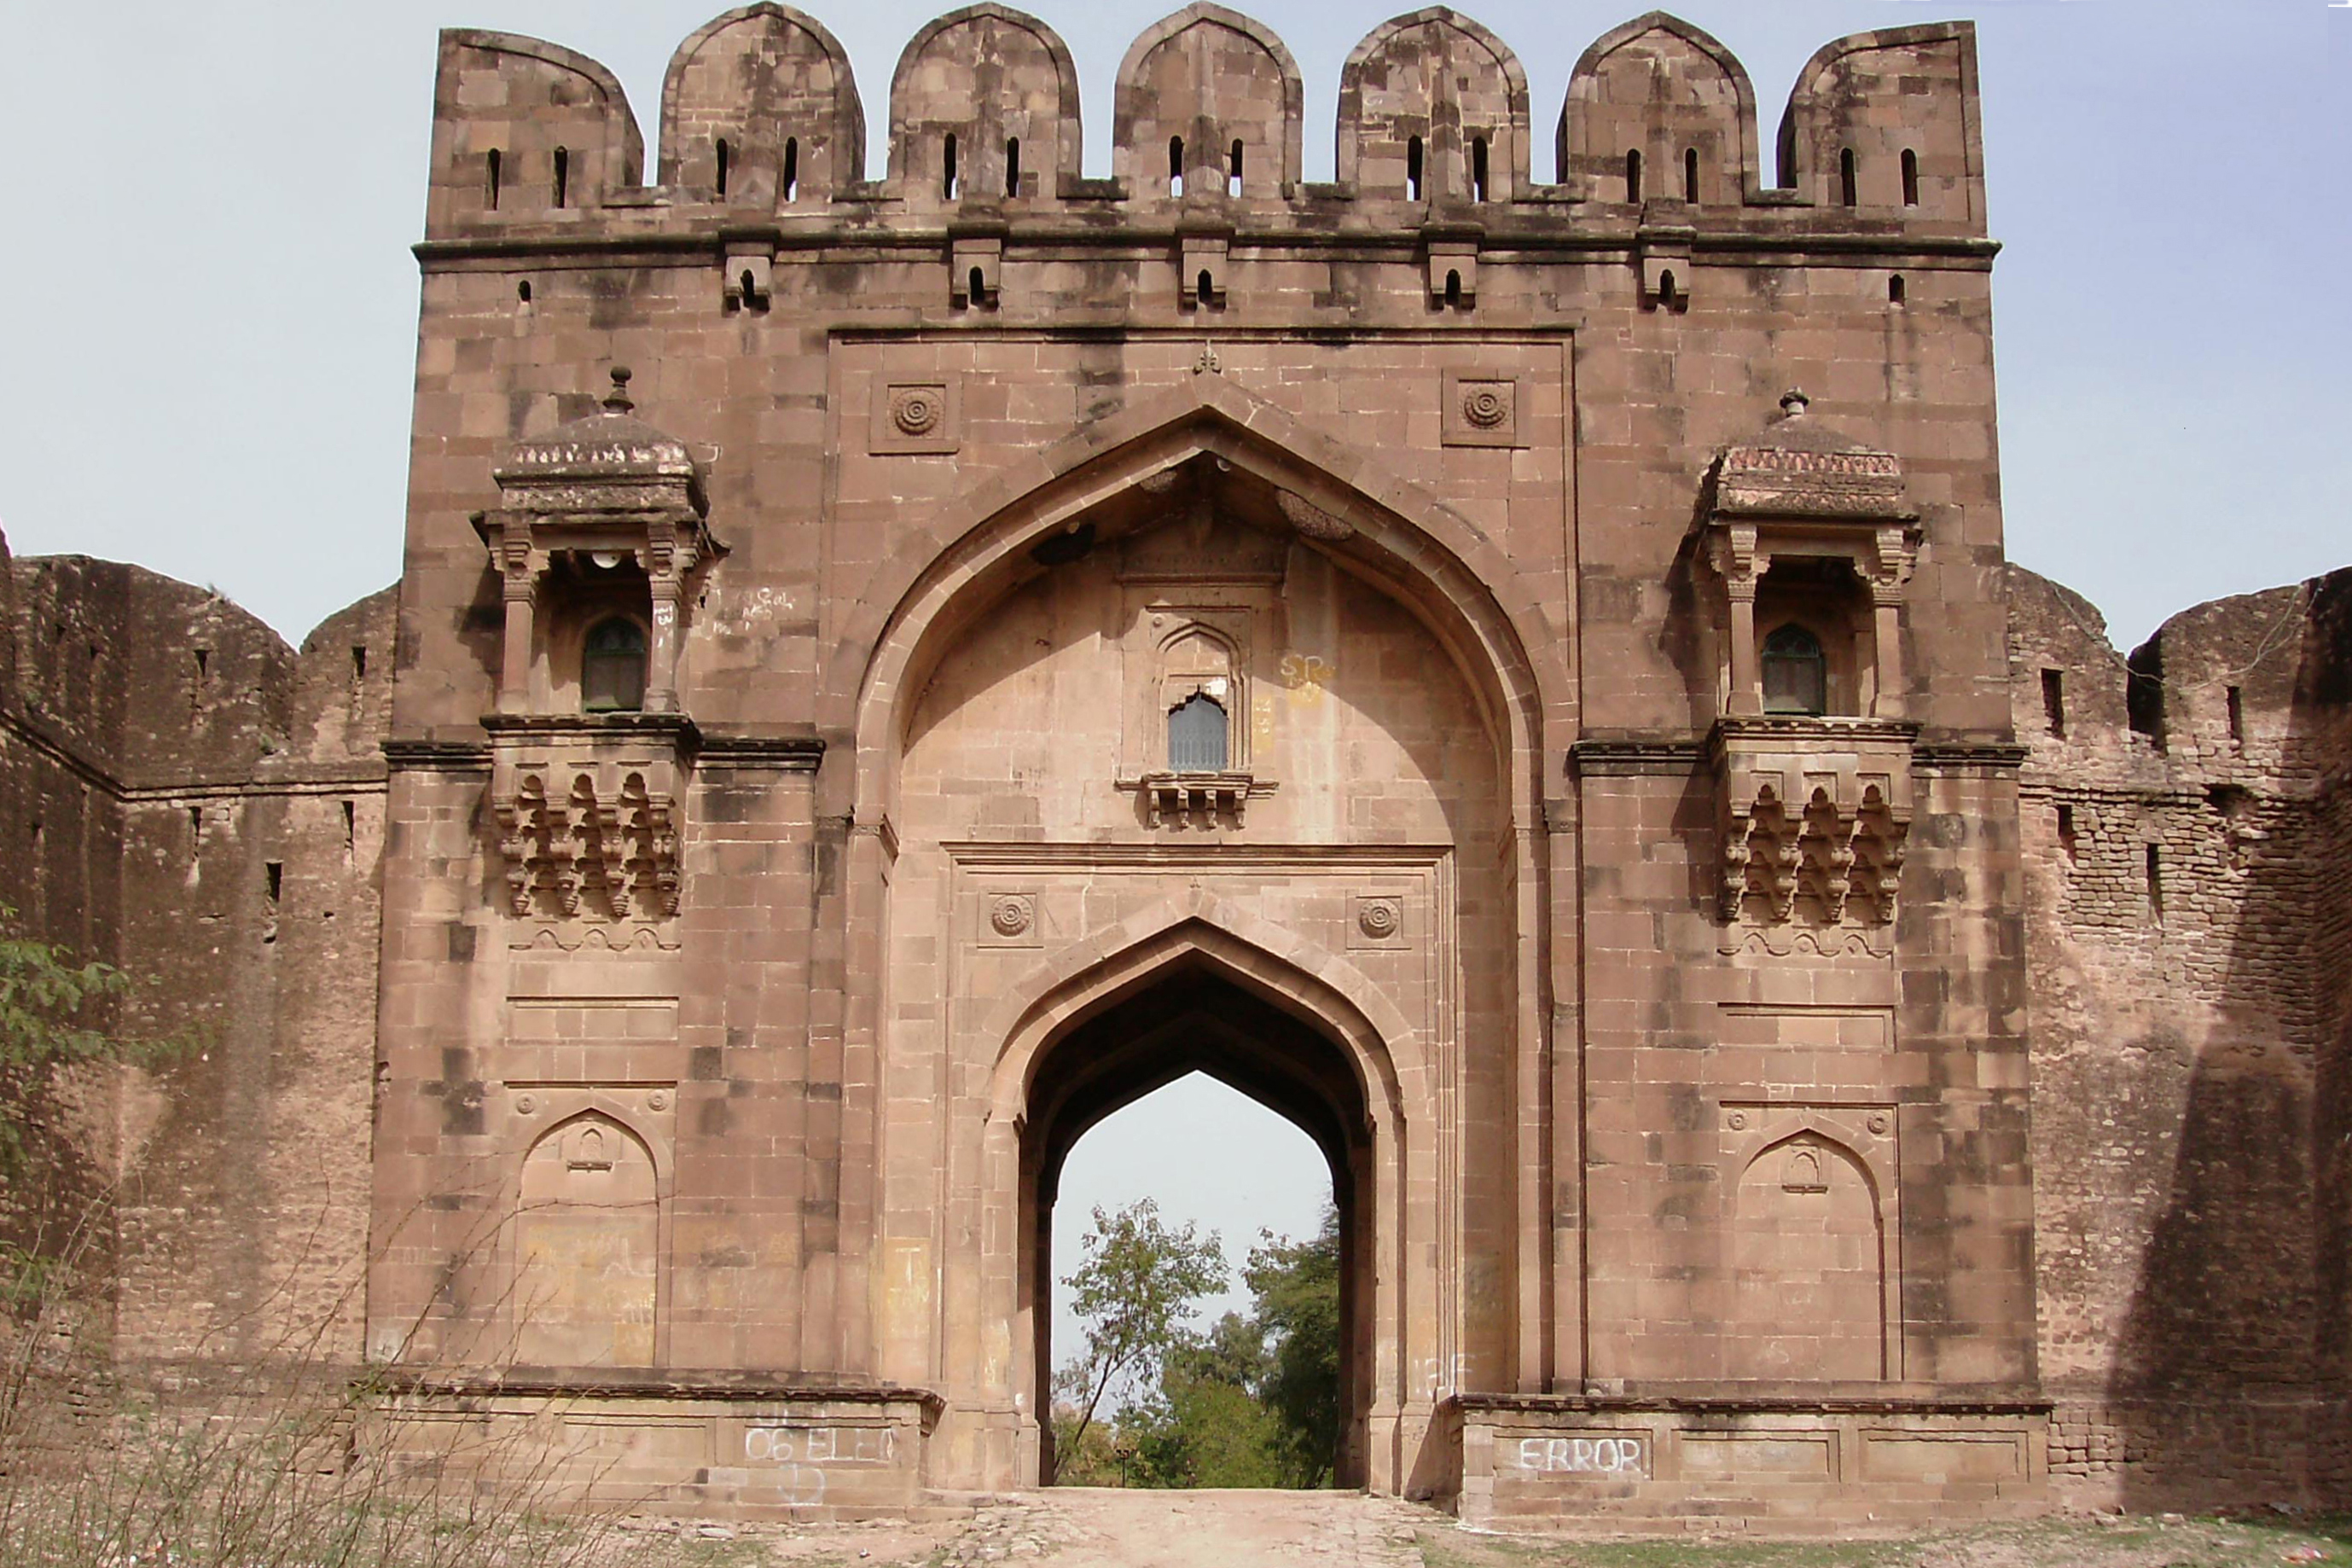 http://upload.wikimedia.org/wikipedia/commons/a/af/Sohail_Gate_Rohtas_by_Sheikh_Rashid_Hameed_copy.jpg